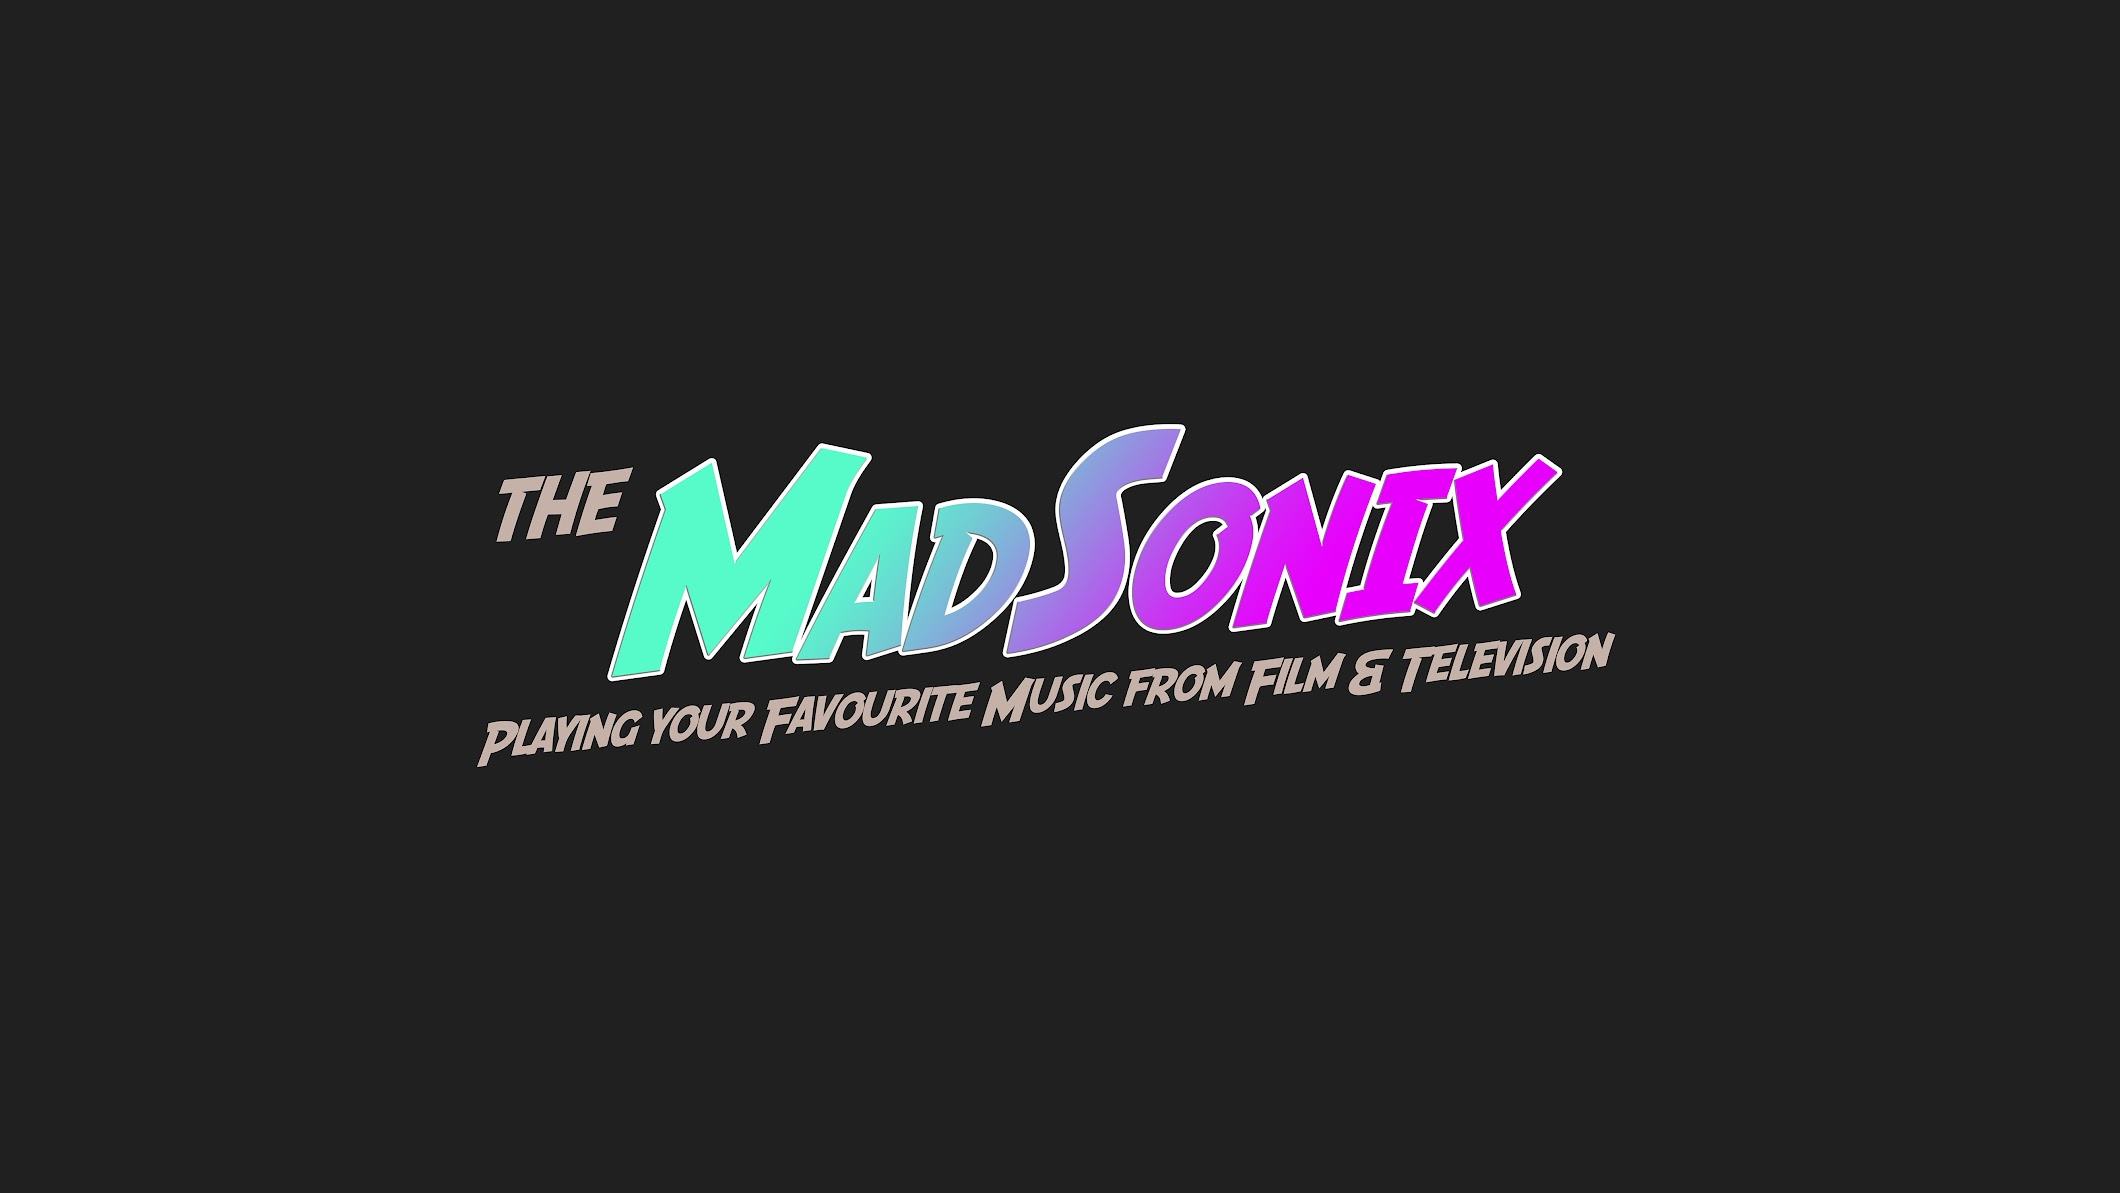 The MadSonix